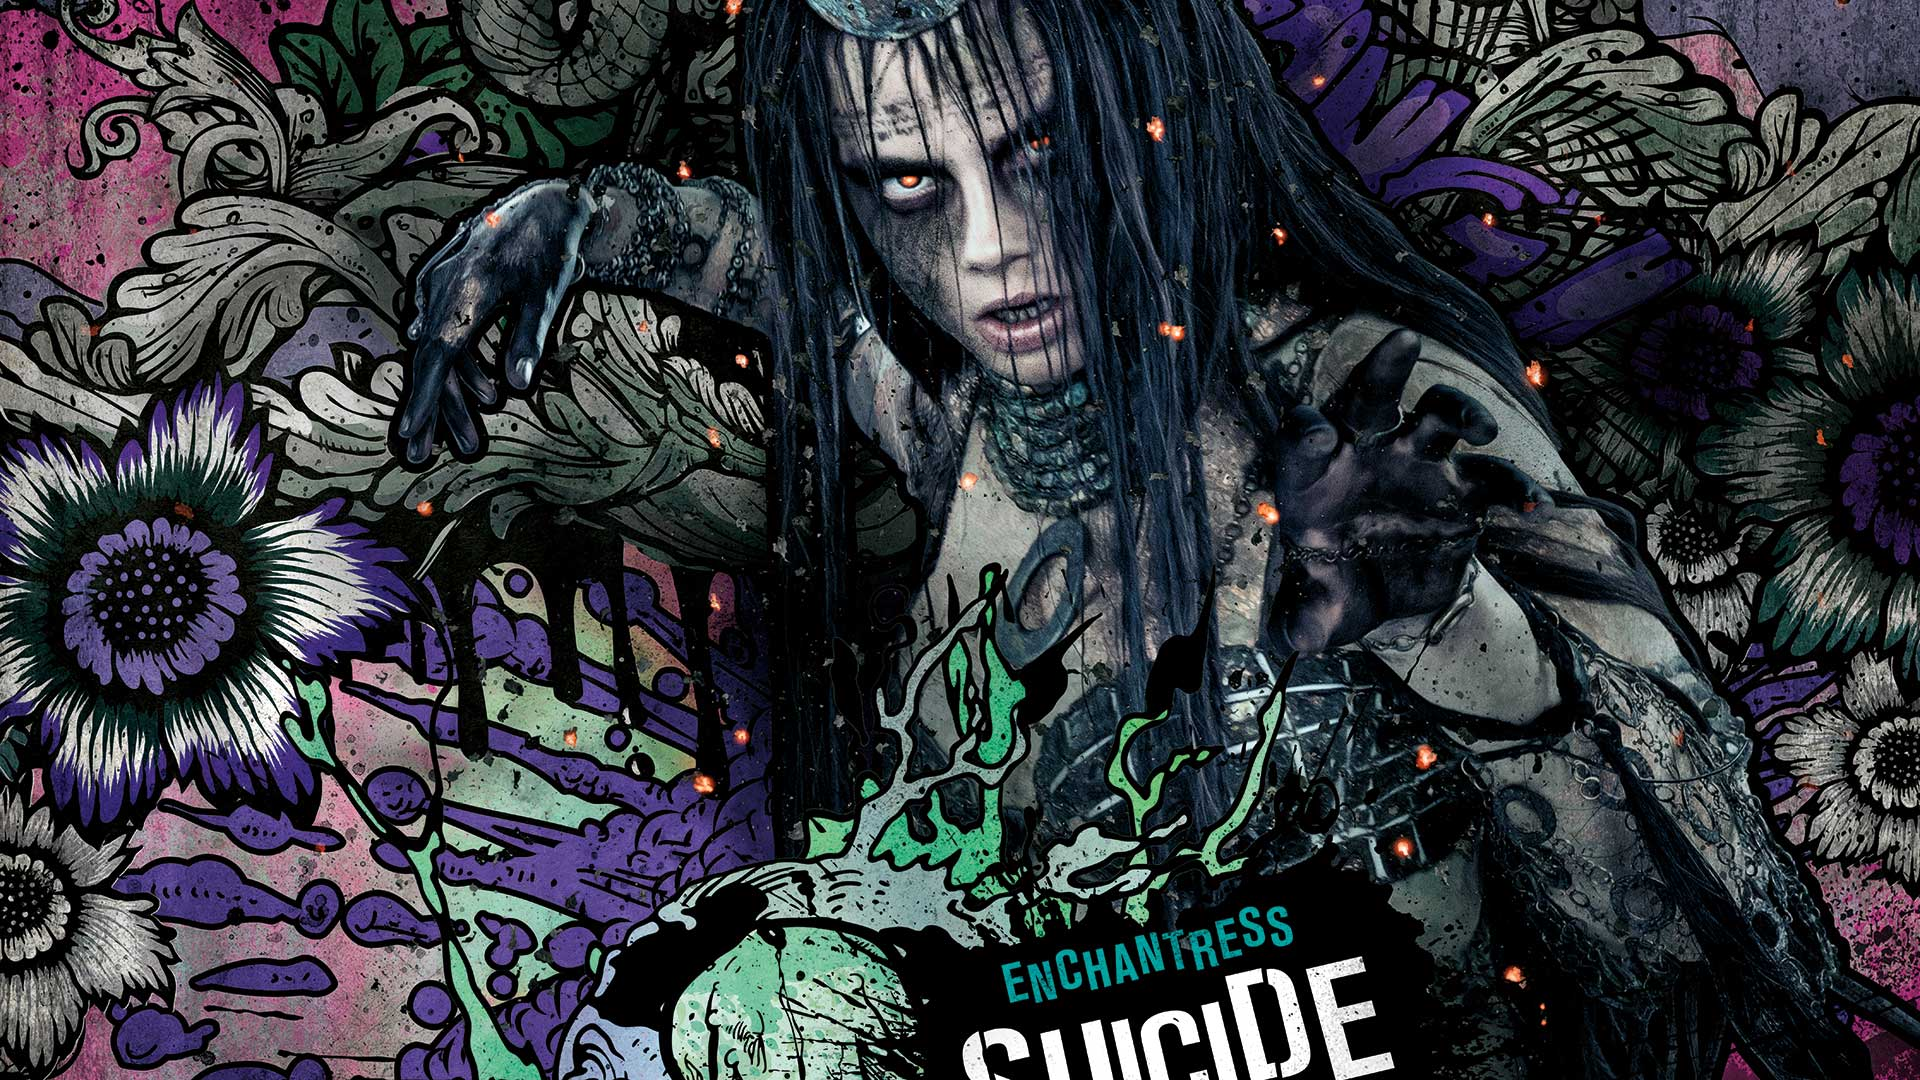 Enchantress In Suicide Squad, HD Movies, 4k Wallpapers